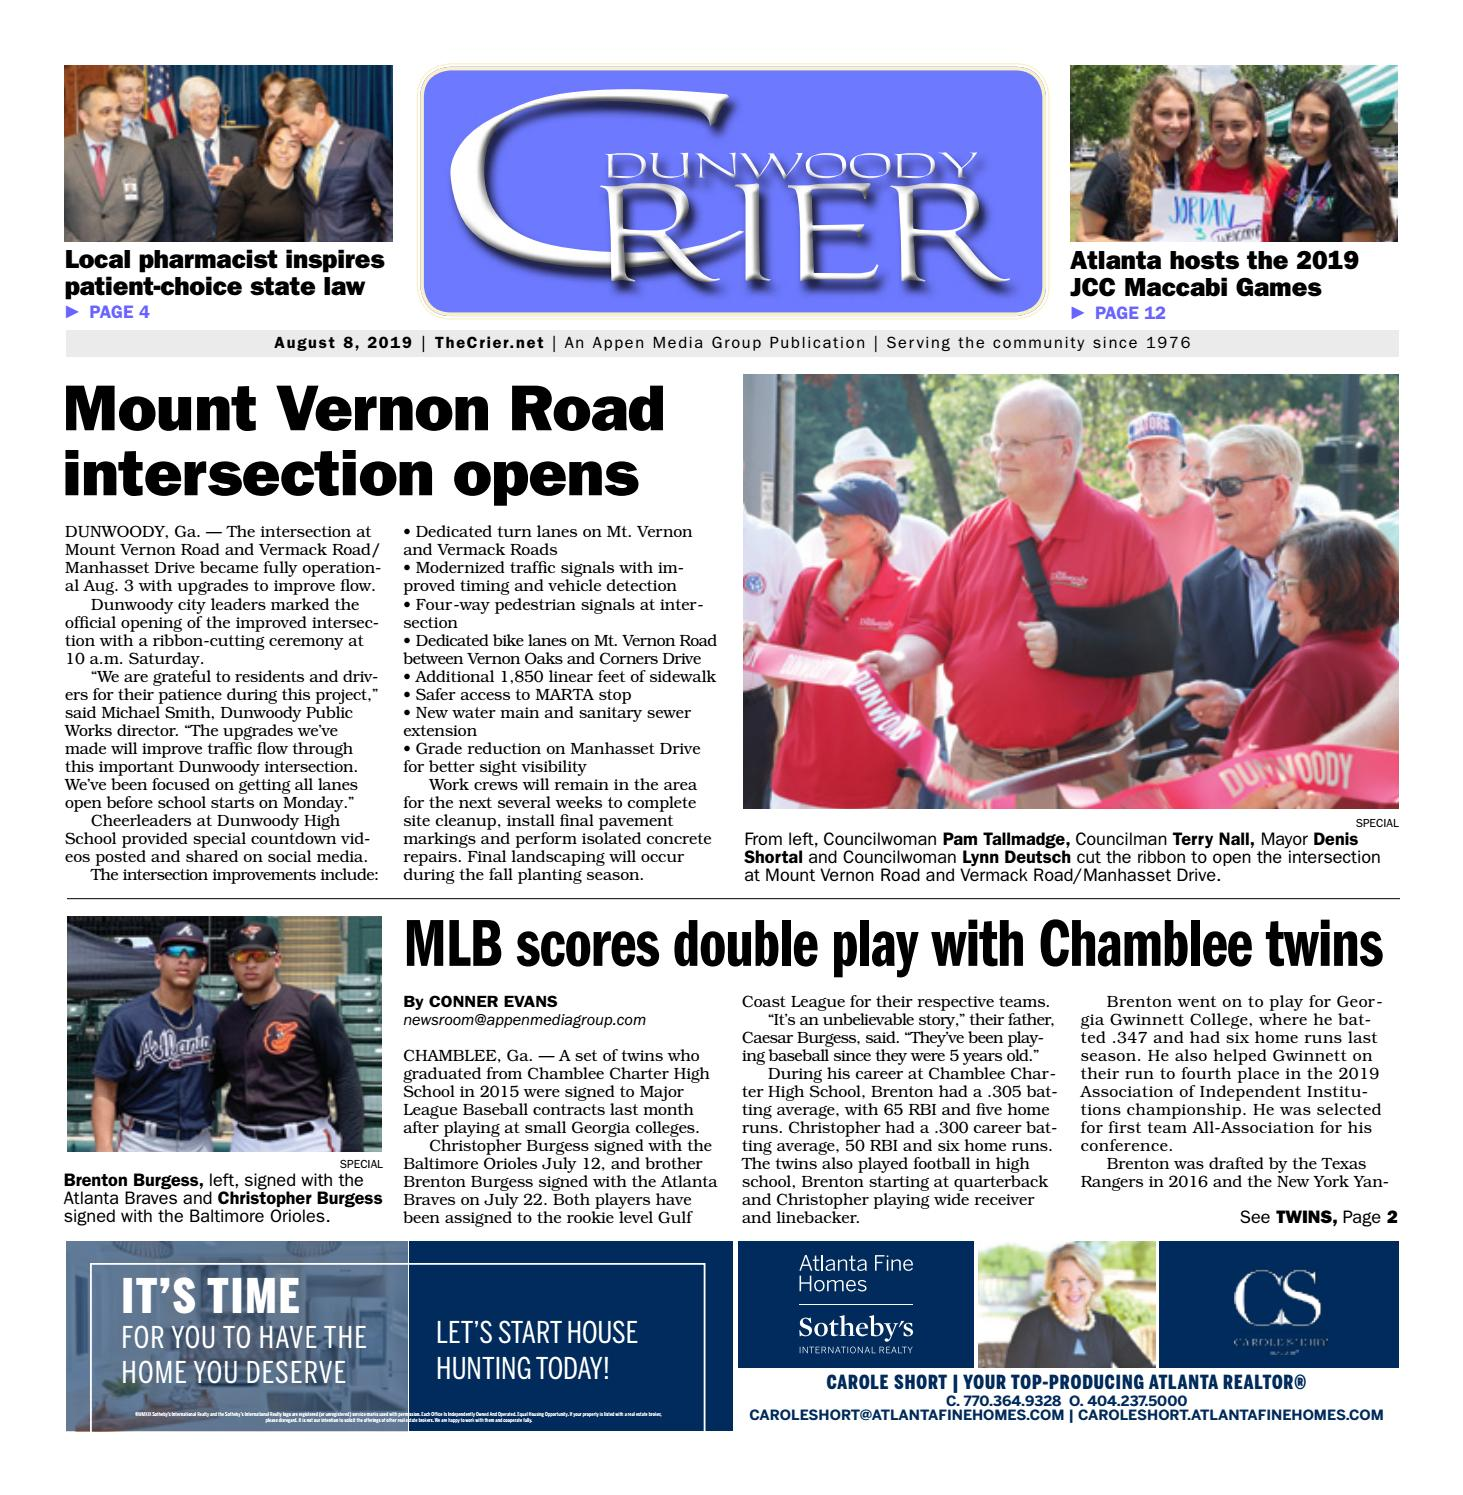 Dunwoody Crier — August 8, 2019 by Appen Media Group - issuu